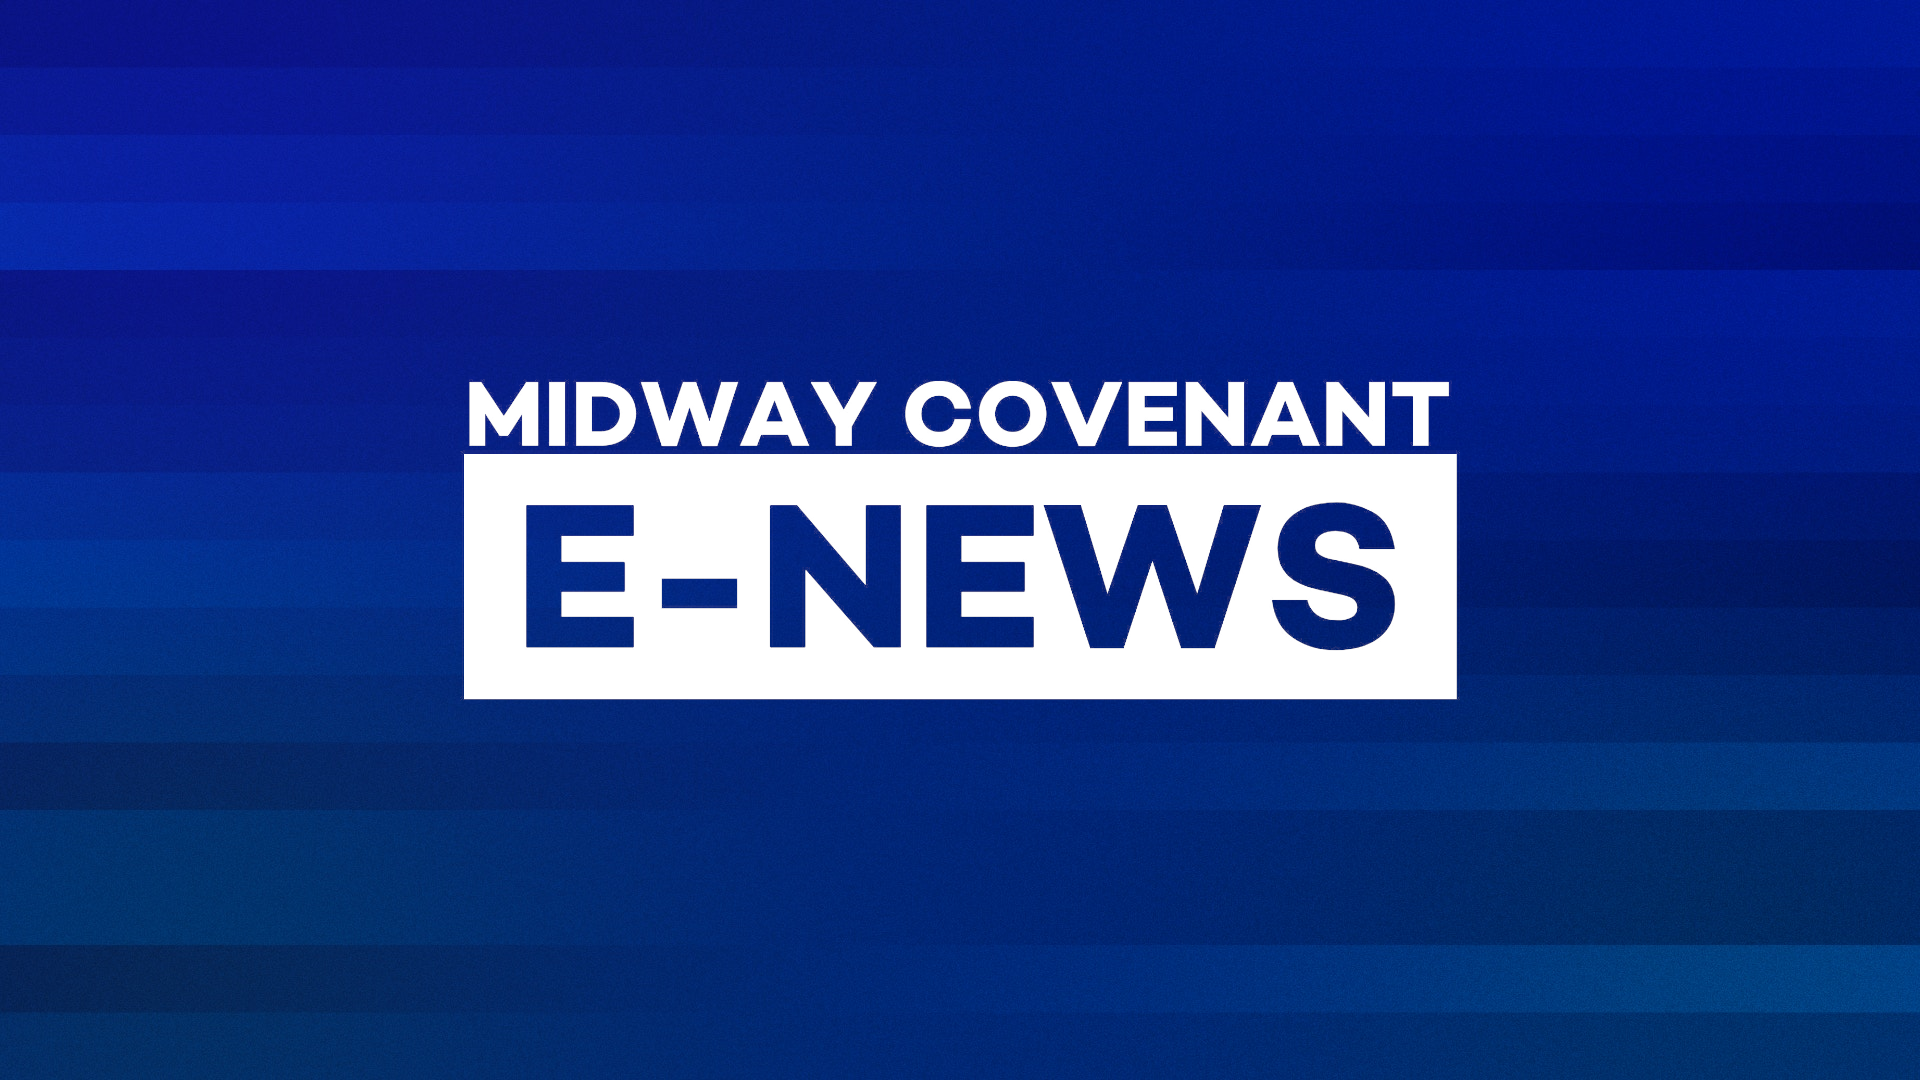 Midway Covenant eNews